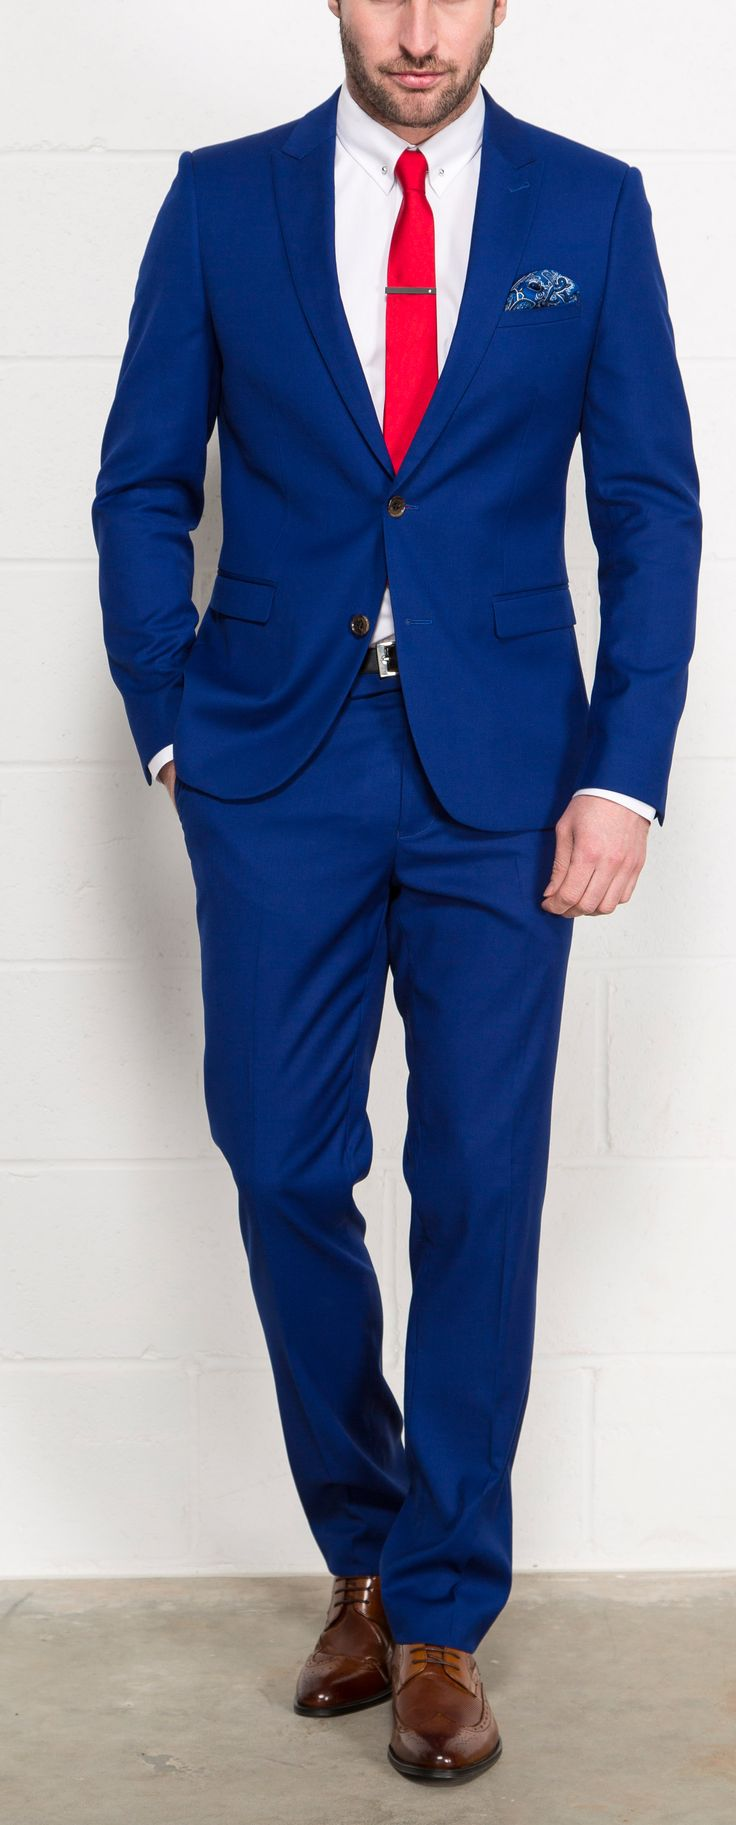 40 best It's all about the Suit images on Pinterest | Menswear ...